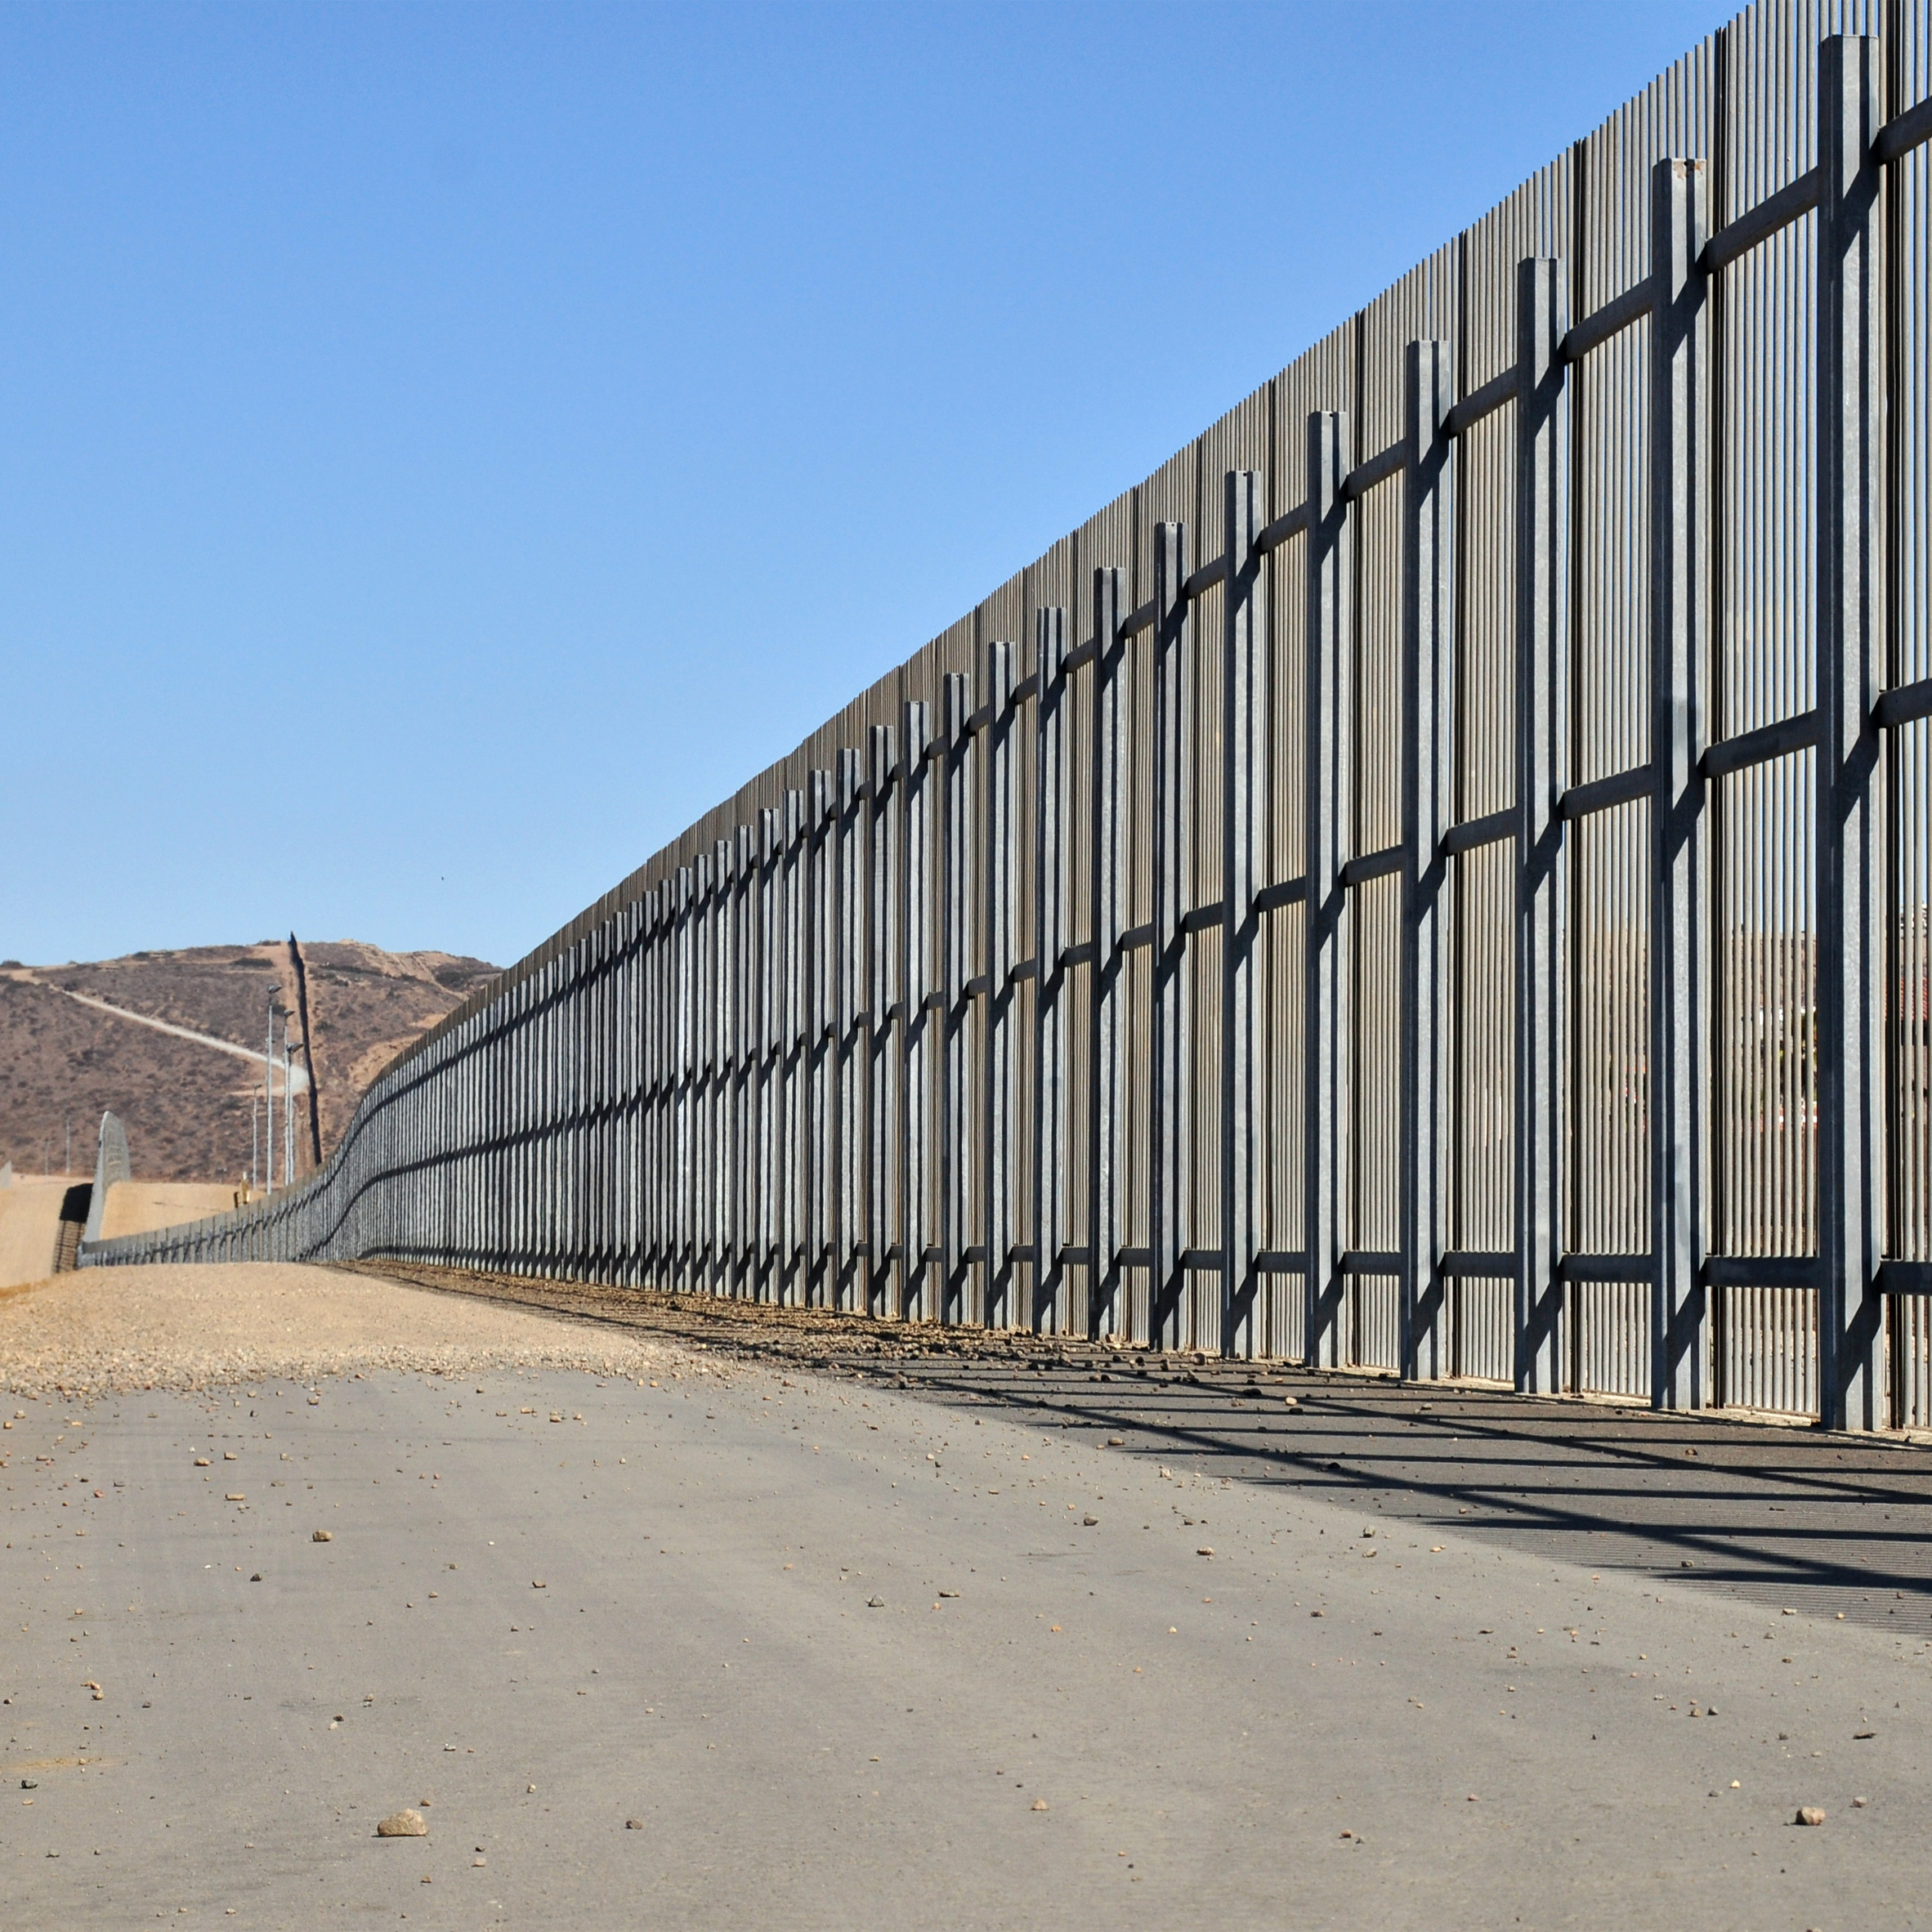 Architects encouraged to walk out in Trump wall protest